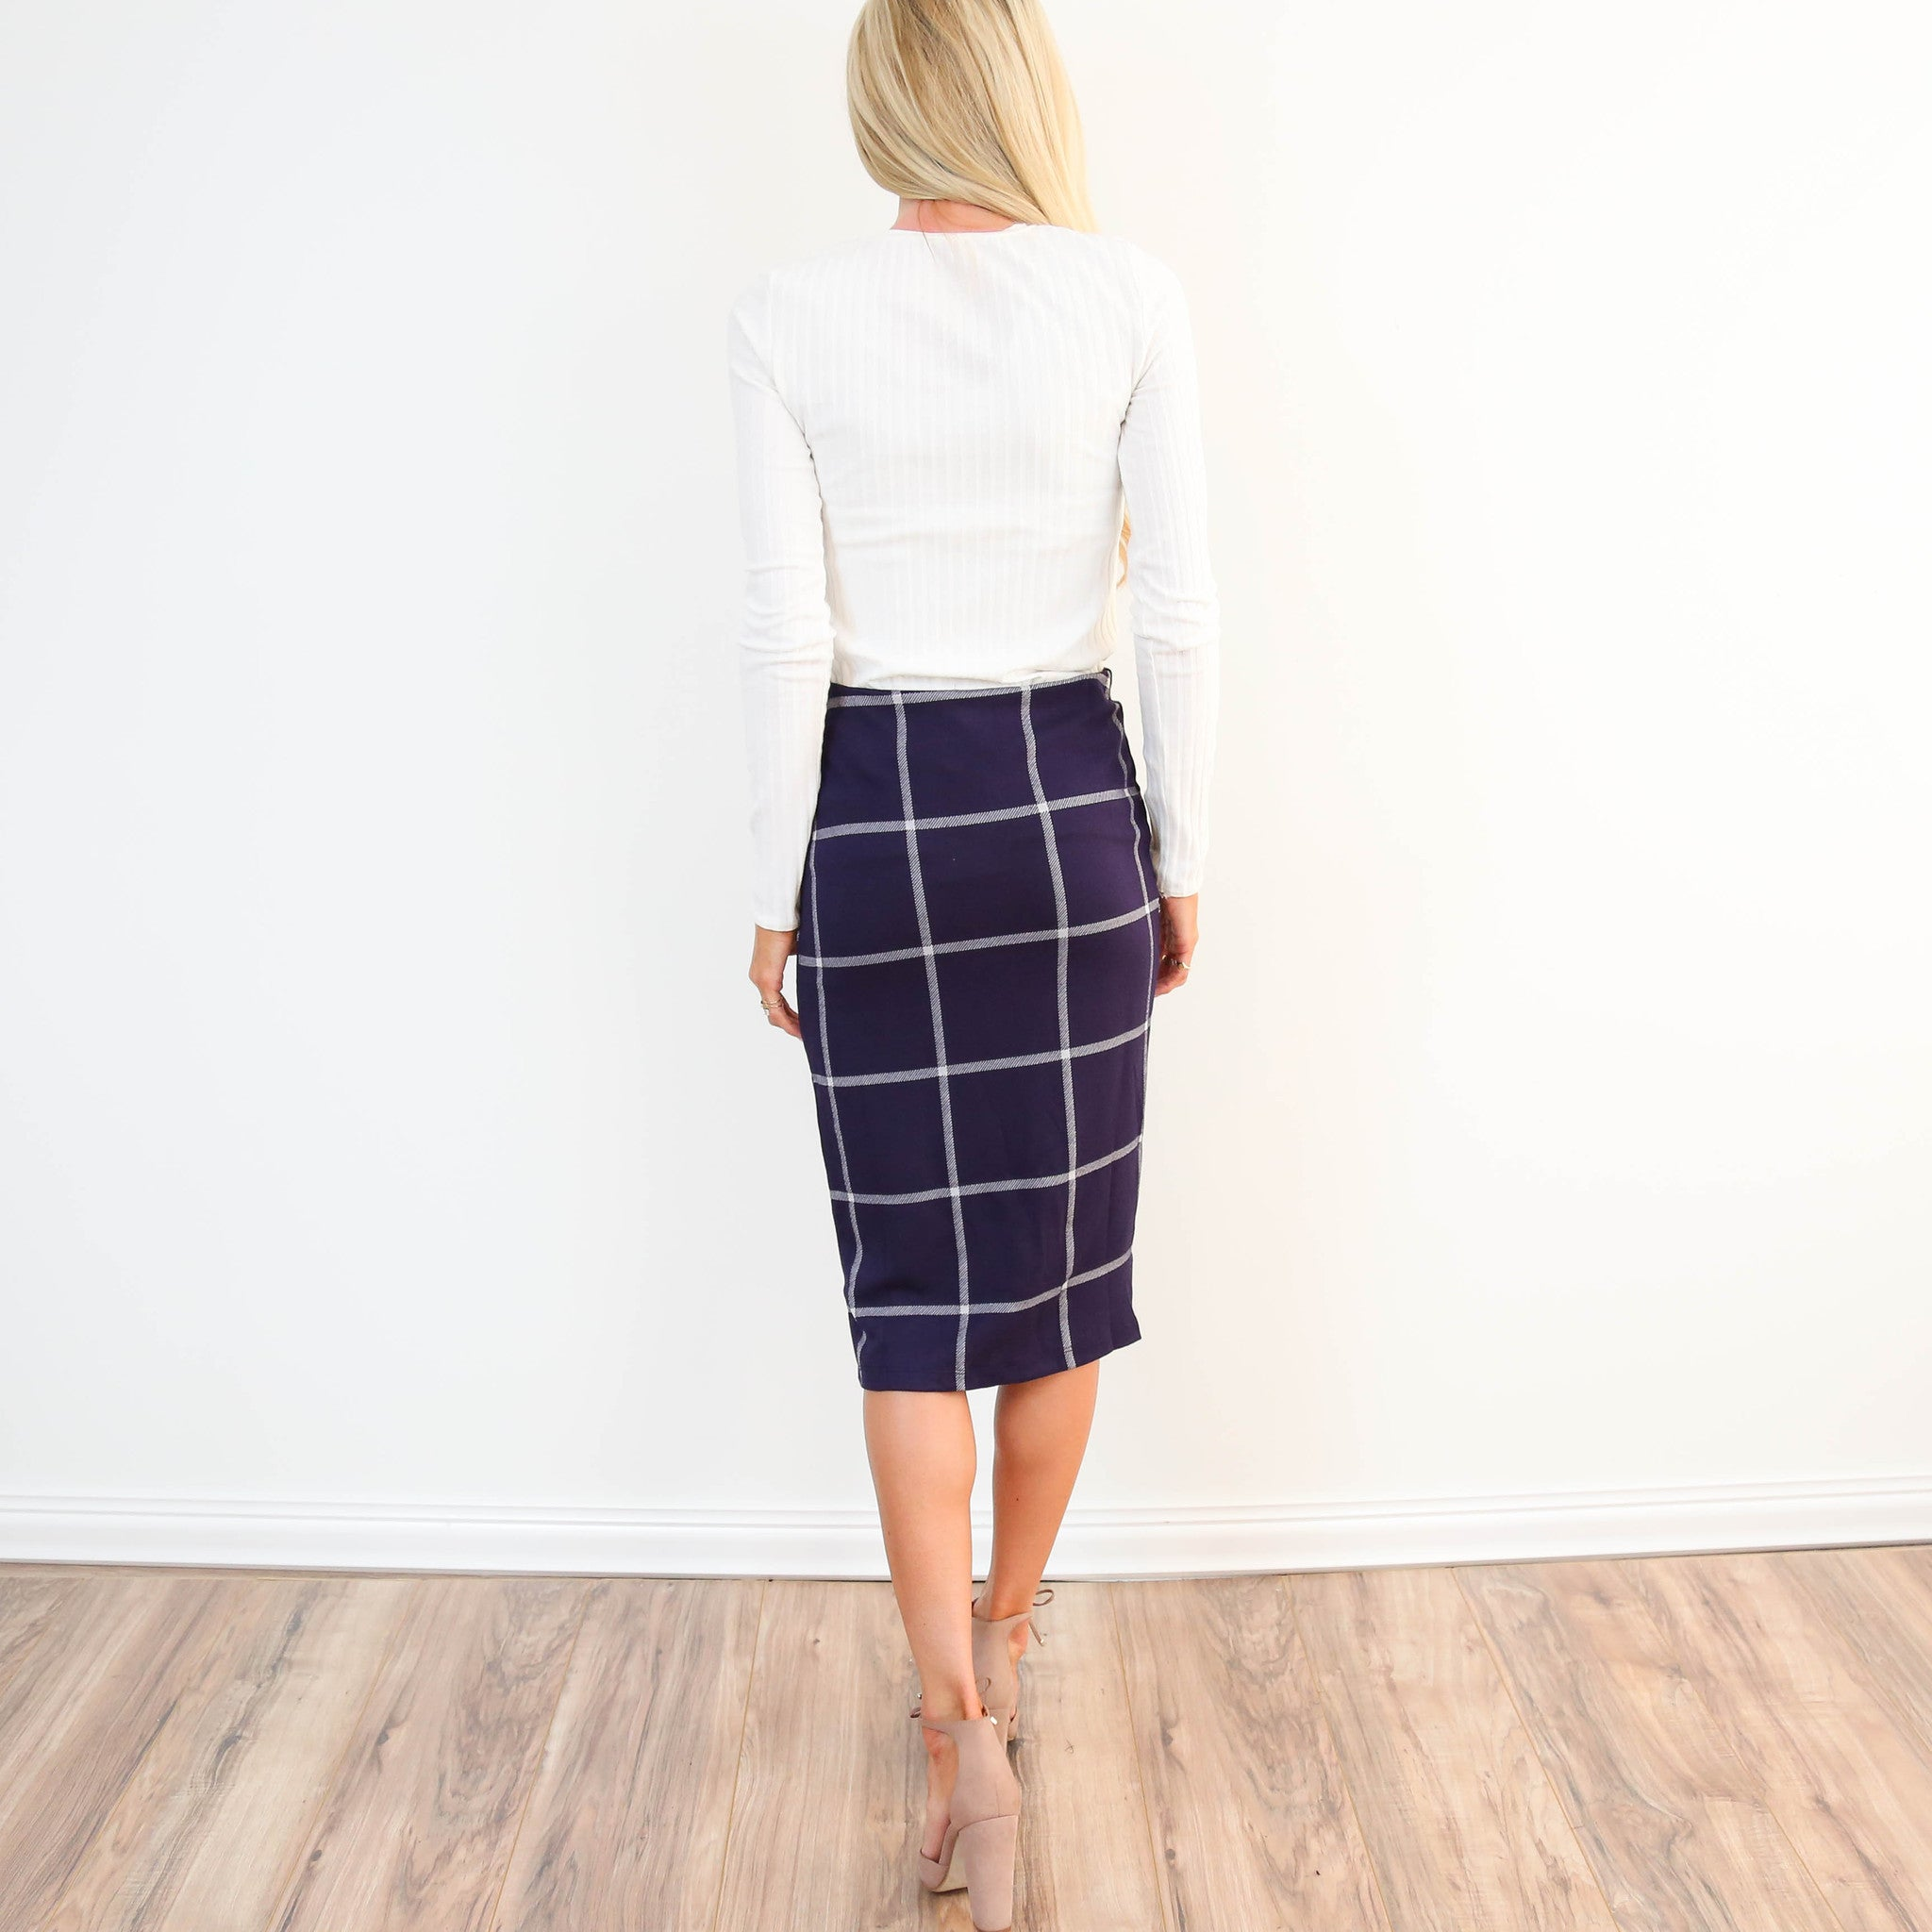 Woven Plaid Midi Skirt in Navy